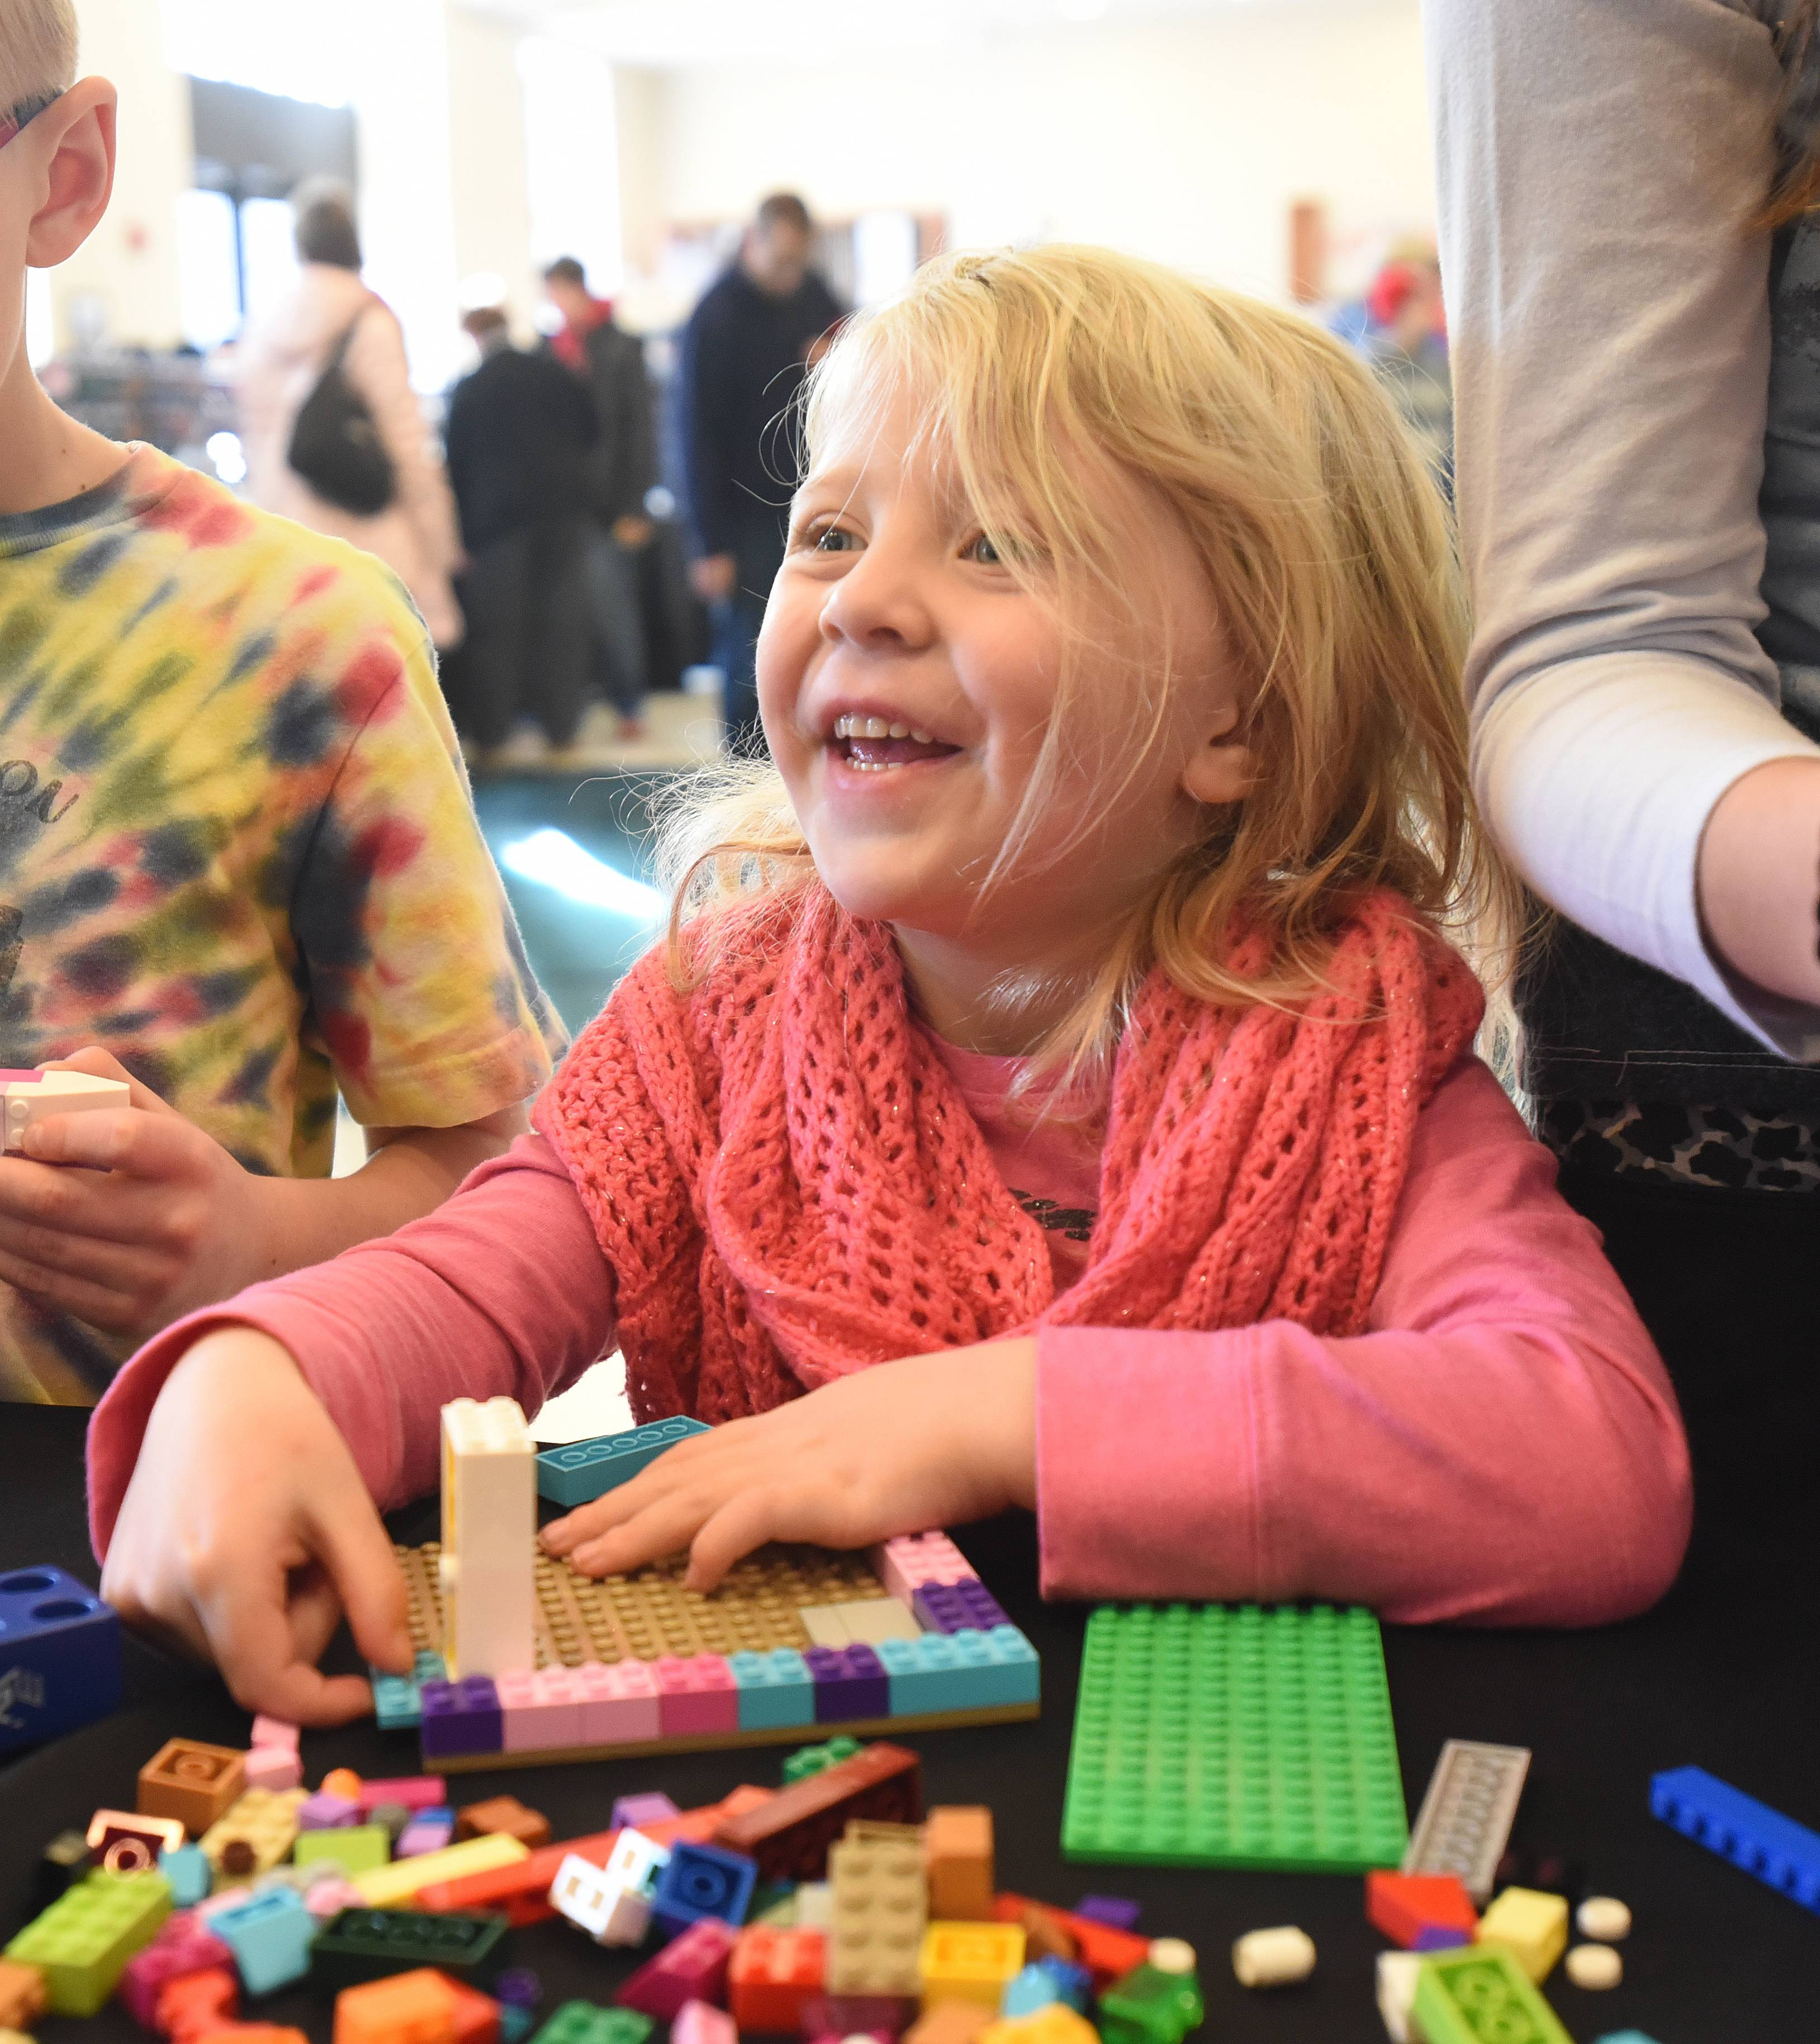 Lelia Gallup, 4, of Indiana starts building during the Northern Illinois Lego Train Club's annual show Saturday at Cantigny Park Saturday. The show continues Sunday.